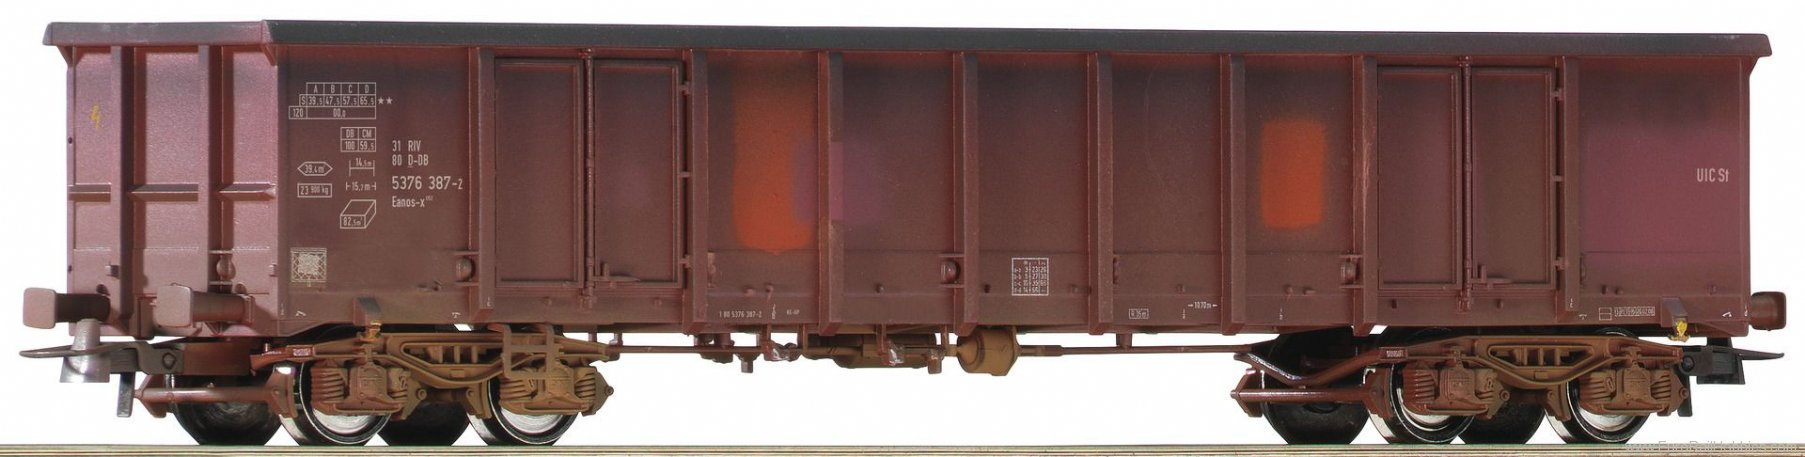 Roco 75997 31805376 454-0, open goods wagon weathered, D